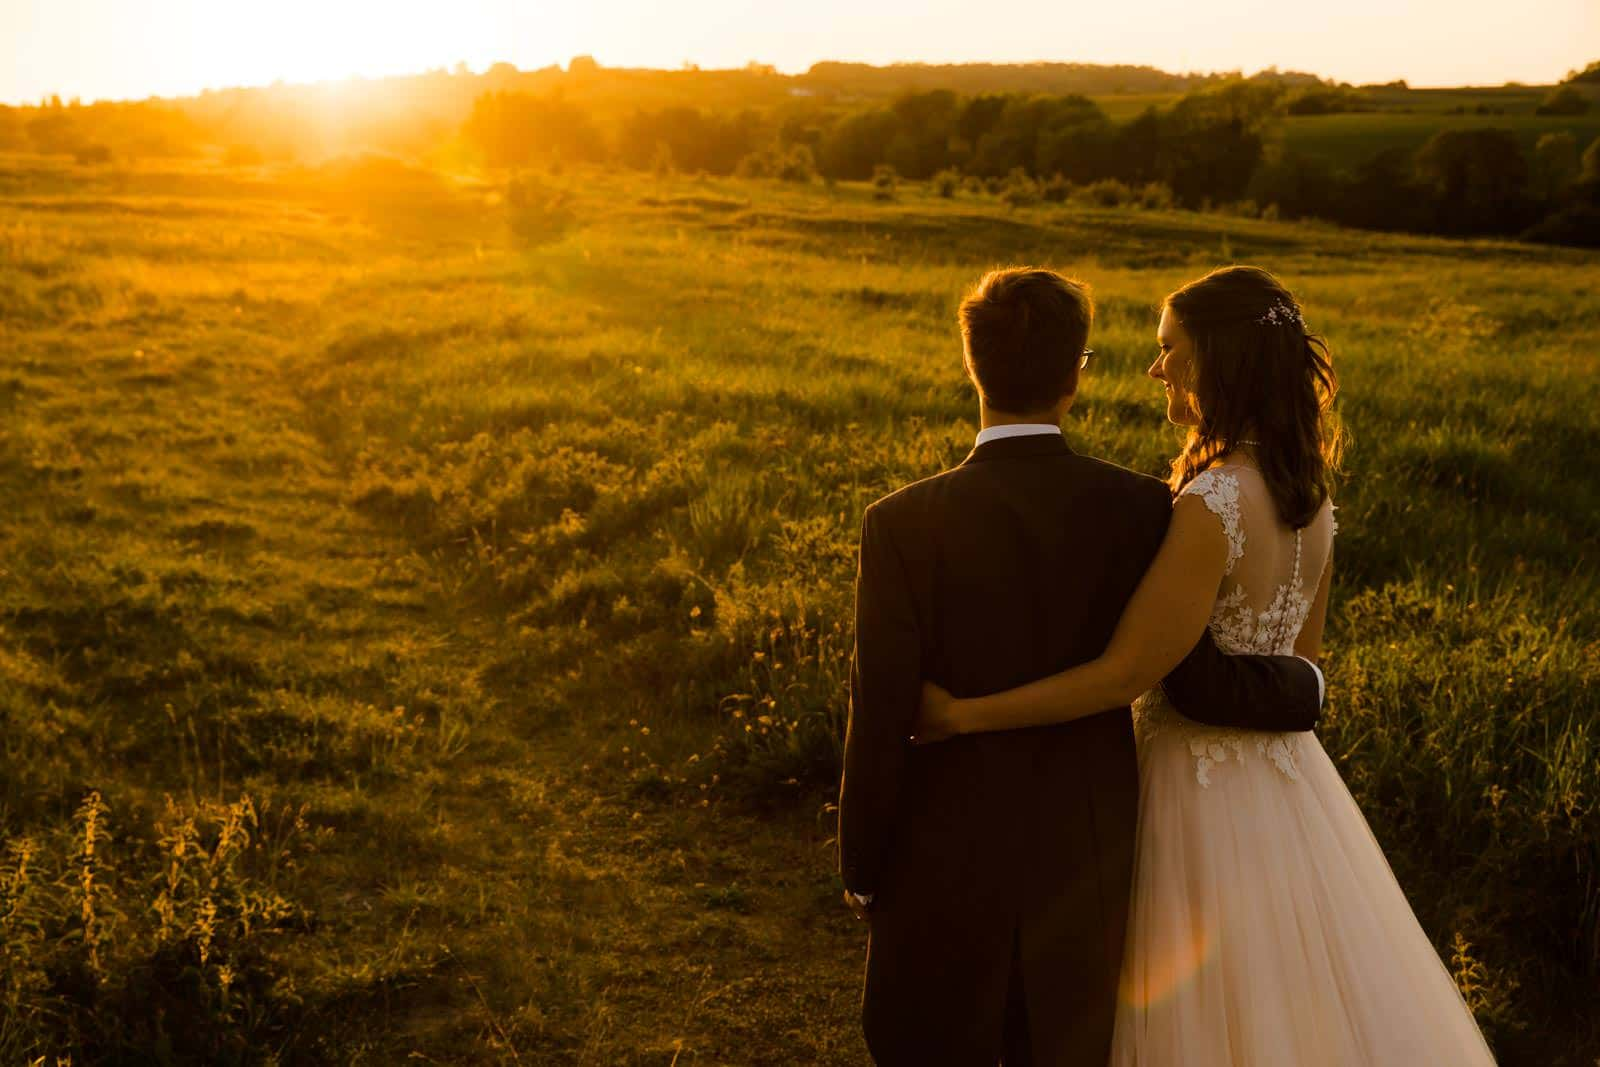 Stunning golden hour photo of the couple Wedding Photographer Buckinghamshire